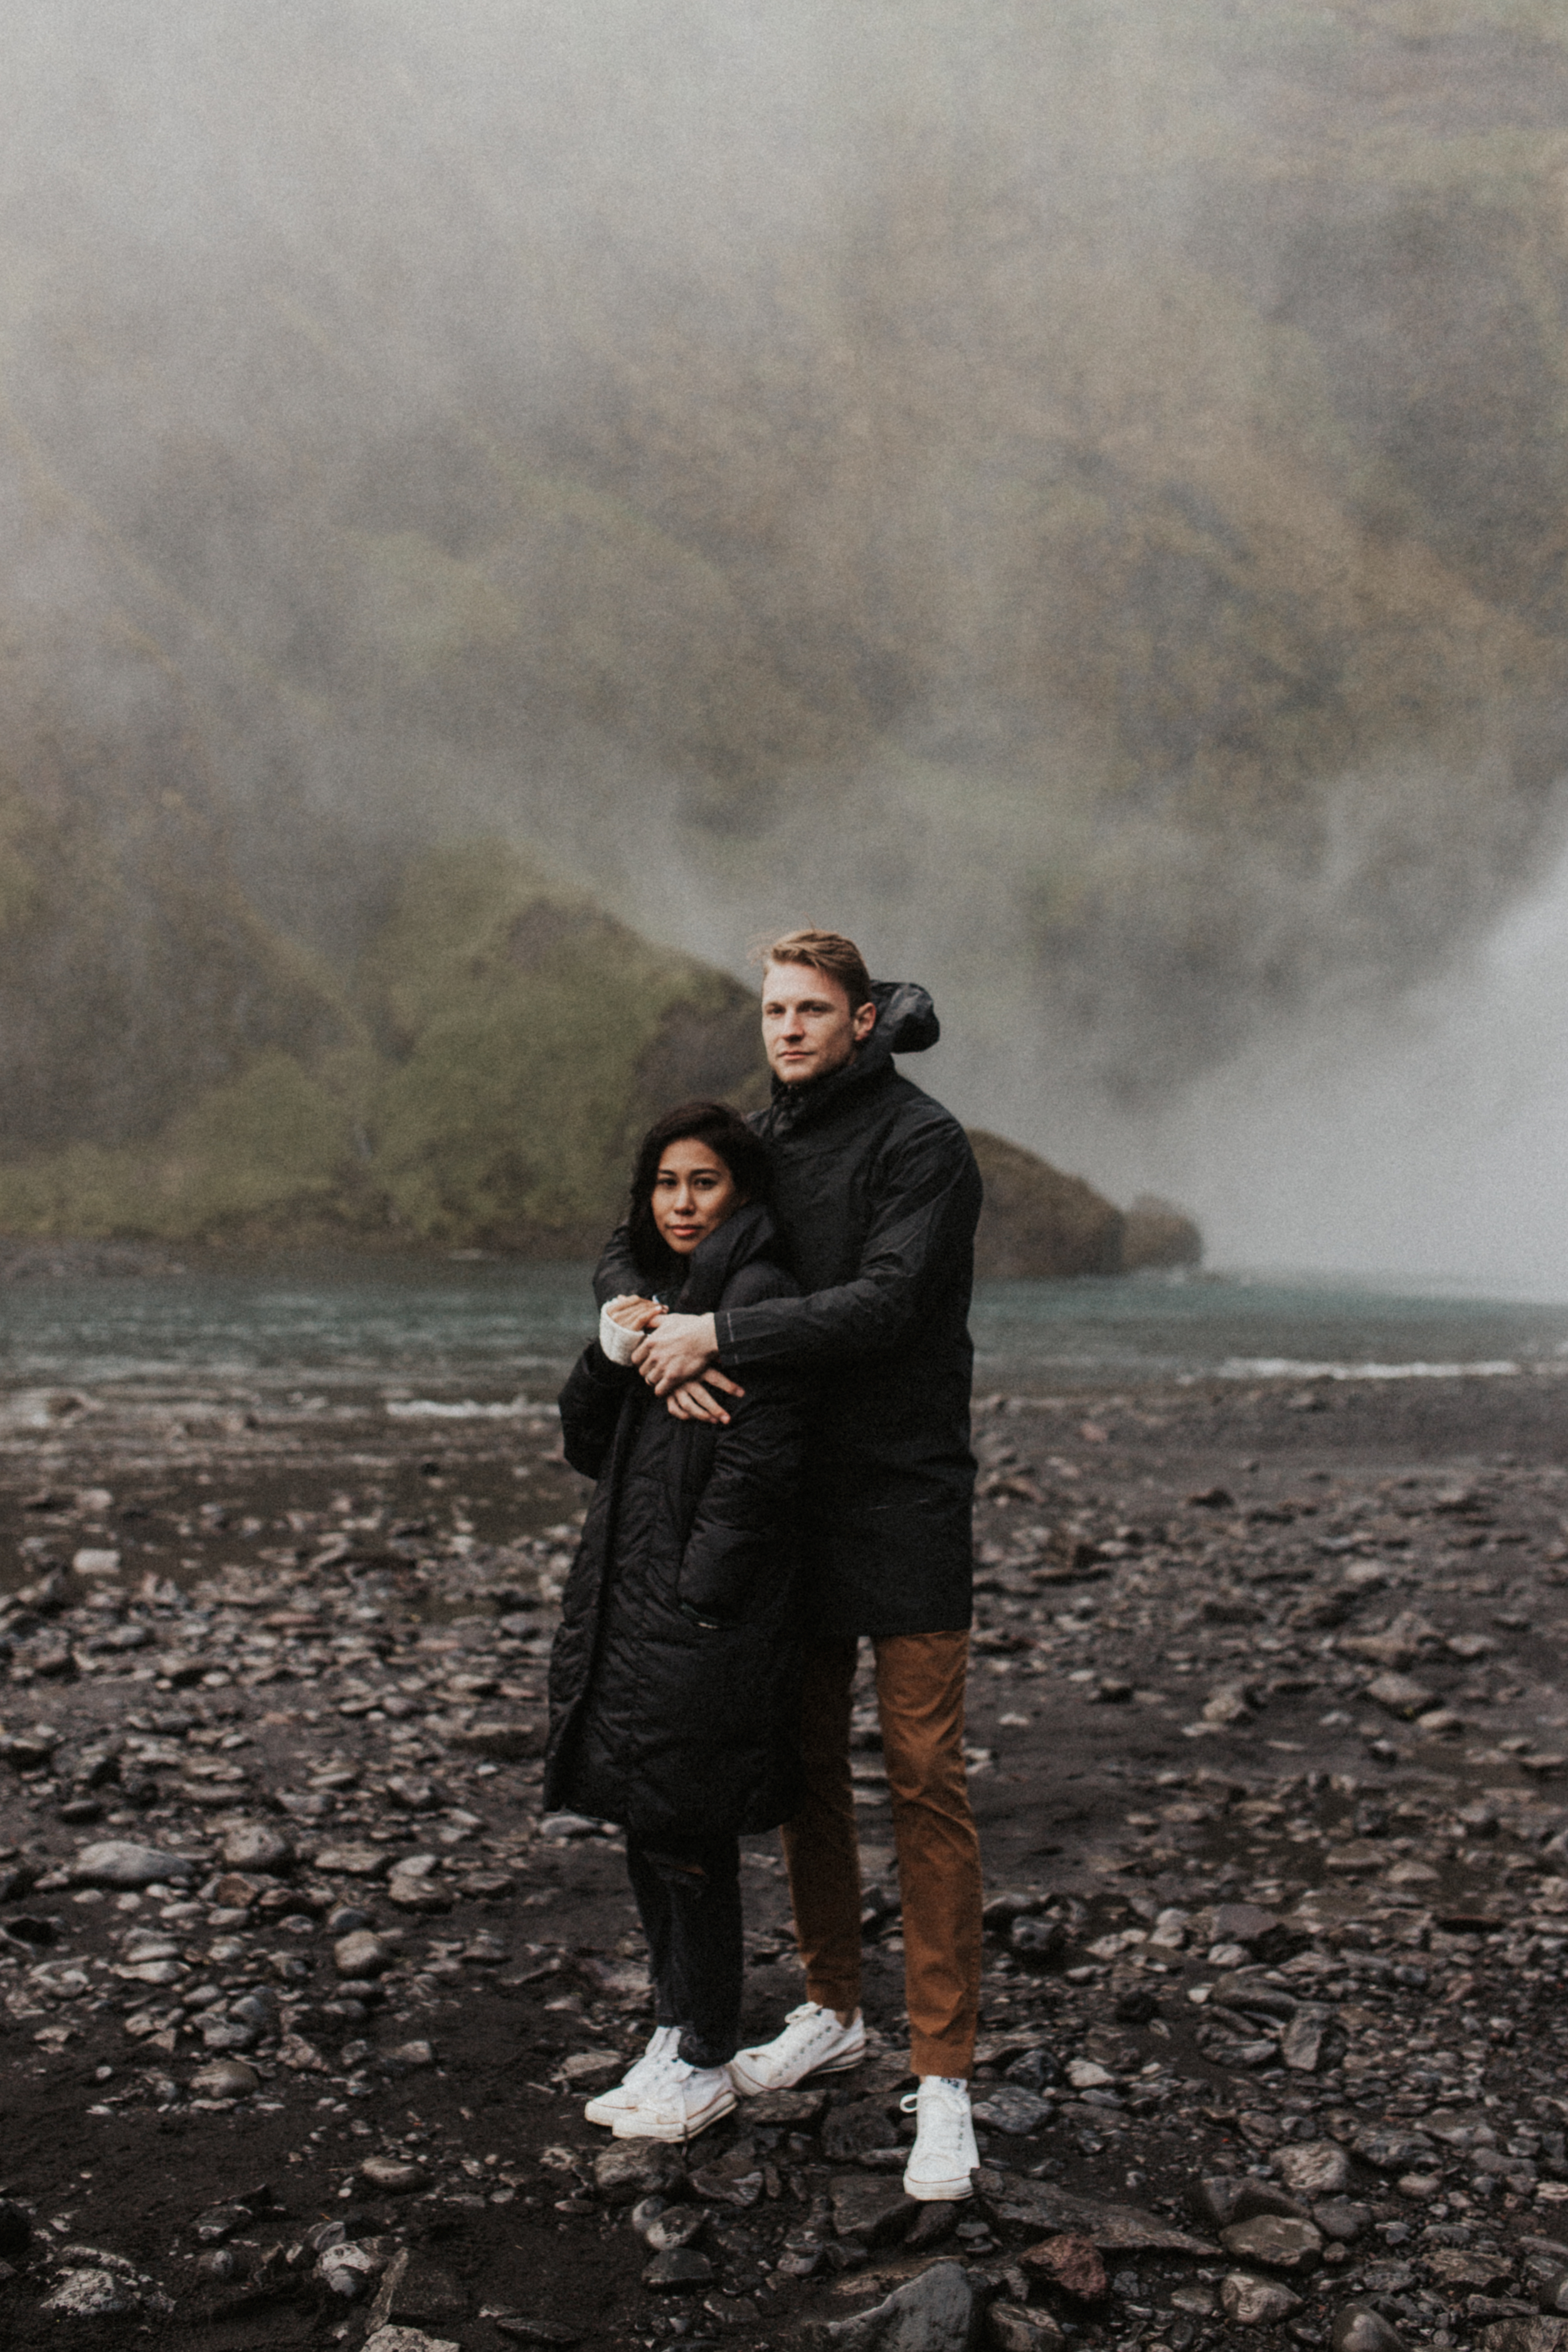 Stunning couples photography at Skógafoss waterfall in Iceland with mist and fog.jpg